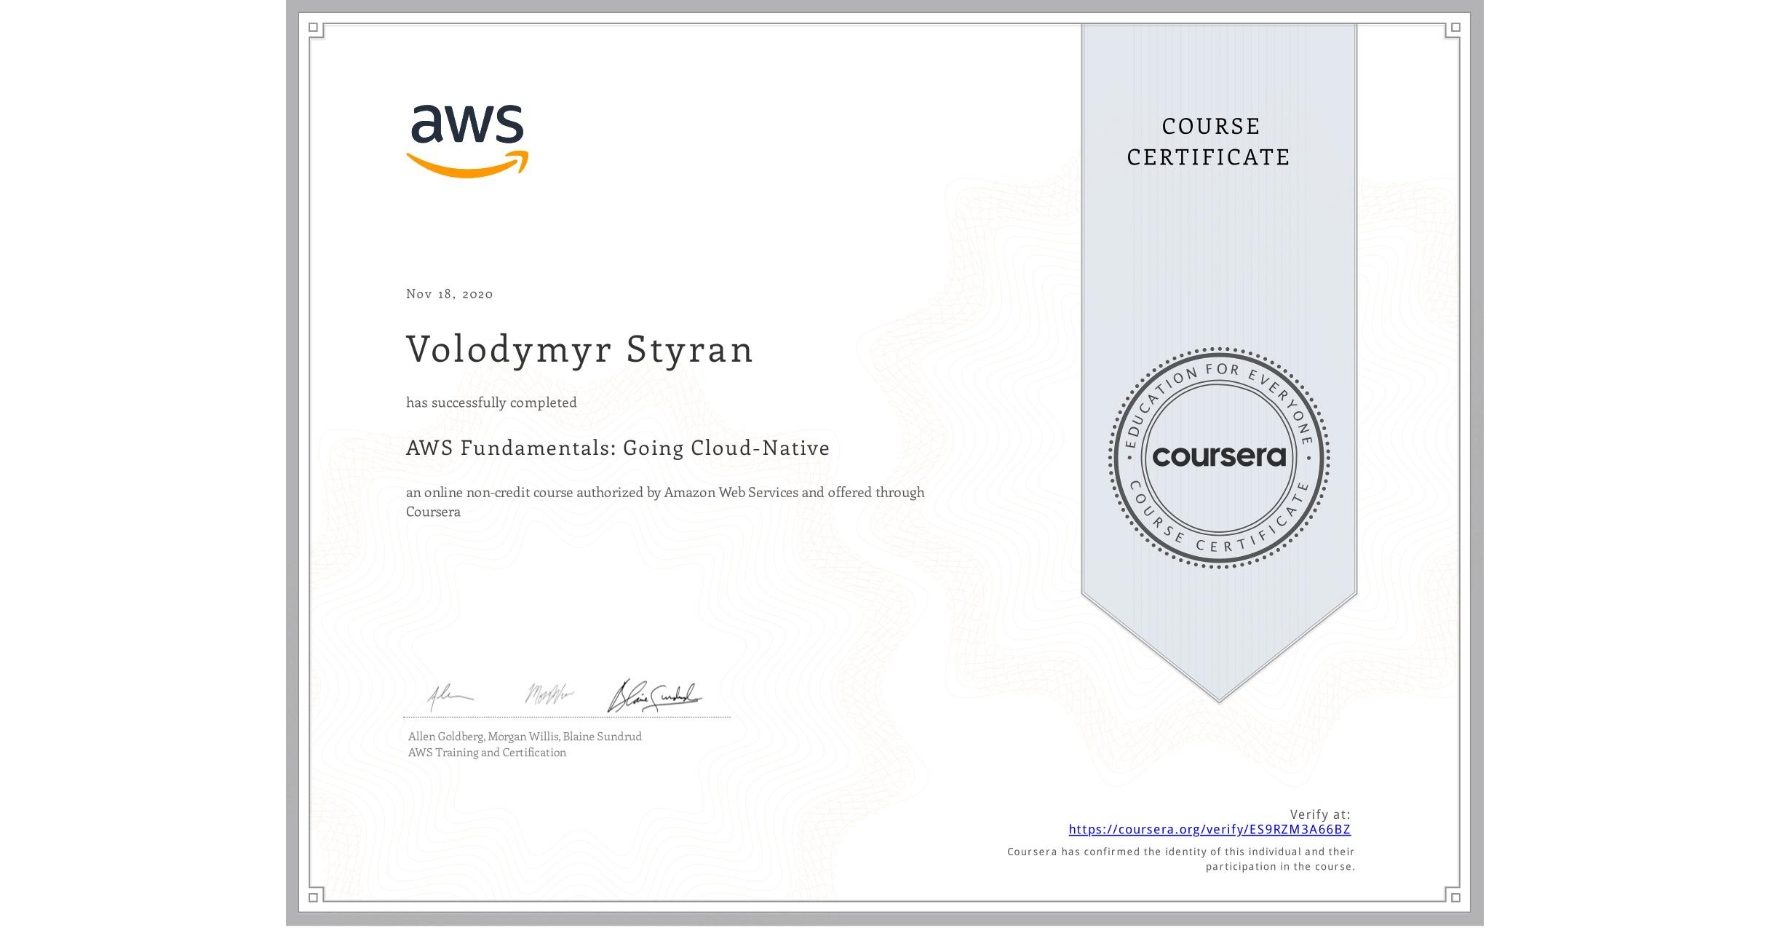 View certificate for Volodymyr Styran, AWS Fundamentals: Going Cloud-Native, an online non-credit course authorized by Amazon Web Services and offered through Coursera